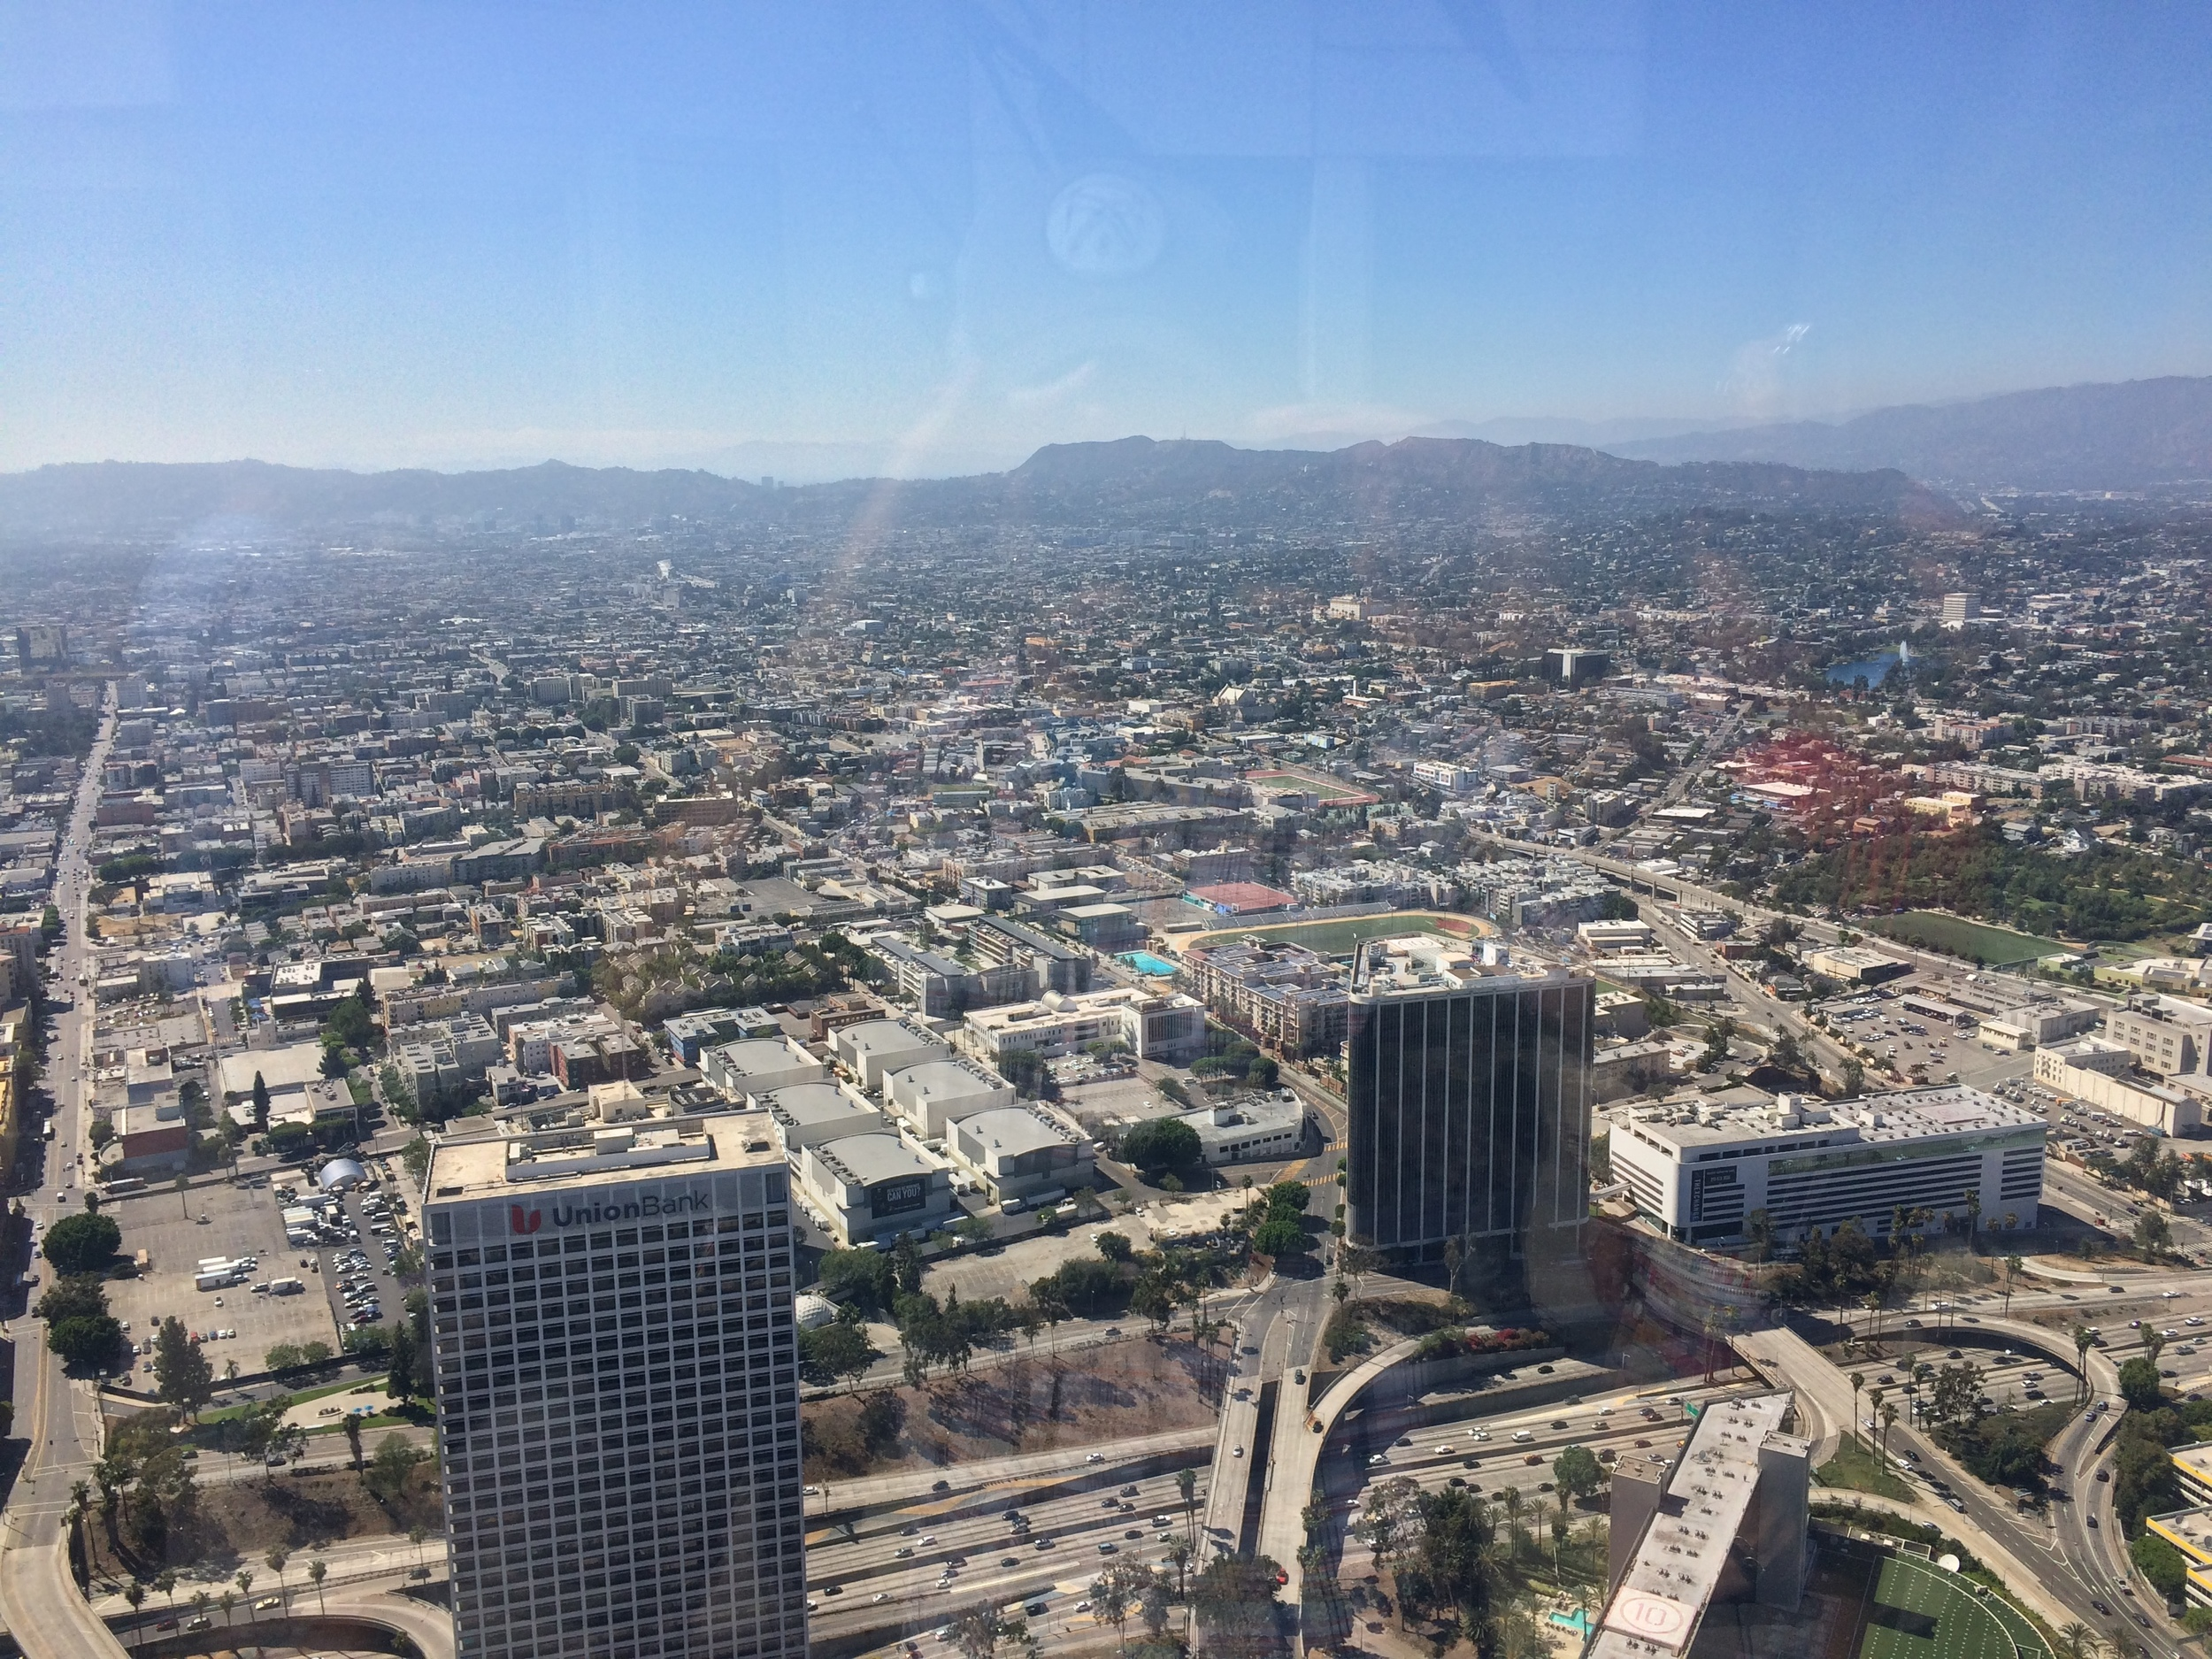 Los Angeles, as seen from the 69th Floor of the U.S. Bank Skyspace Observation Deck